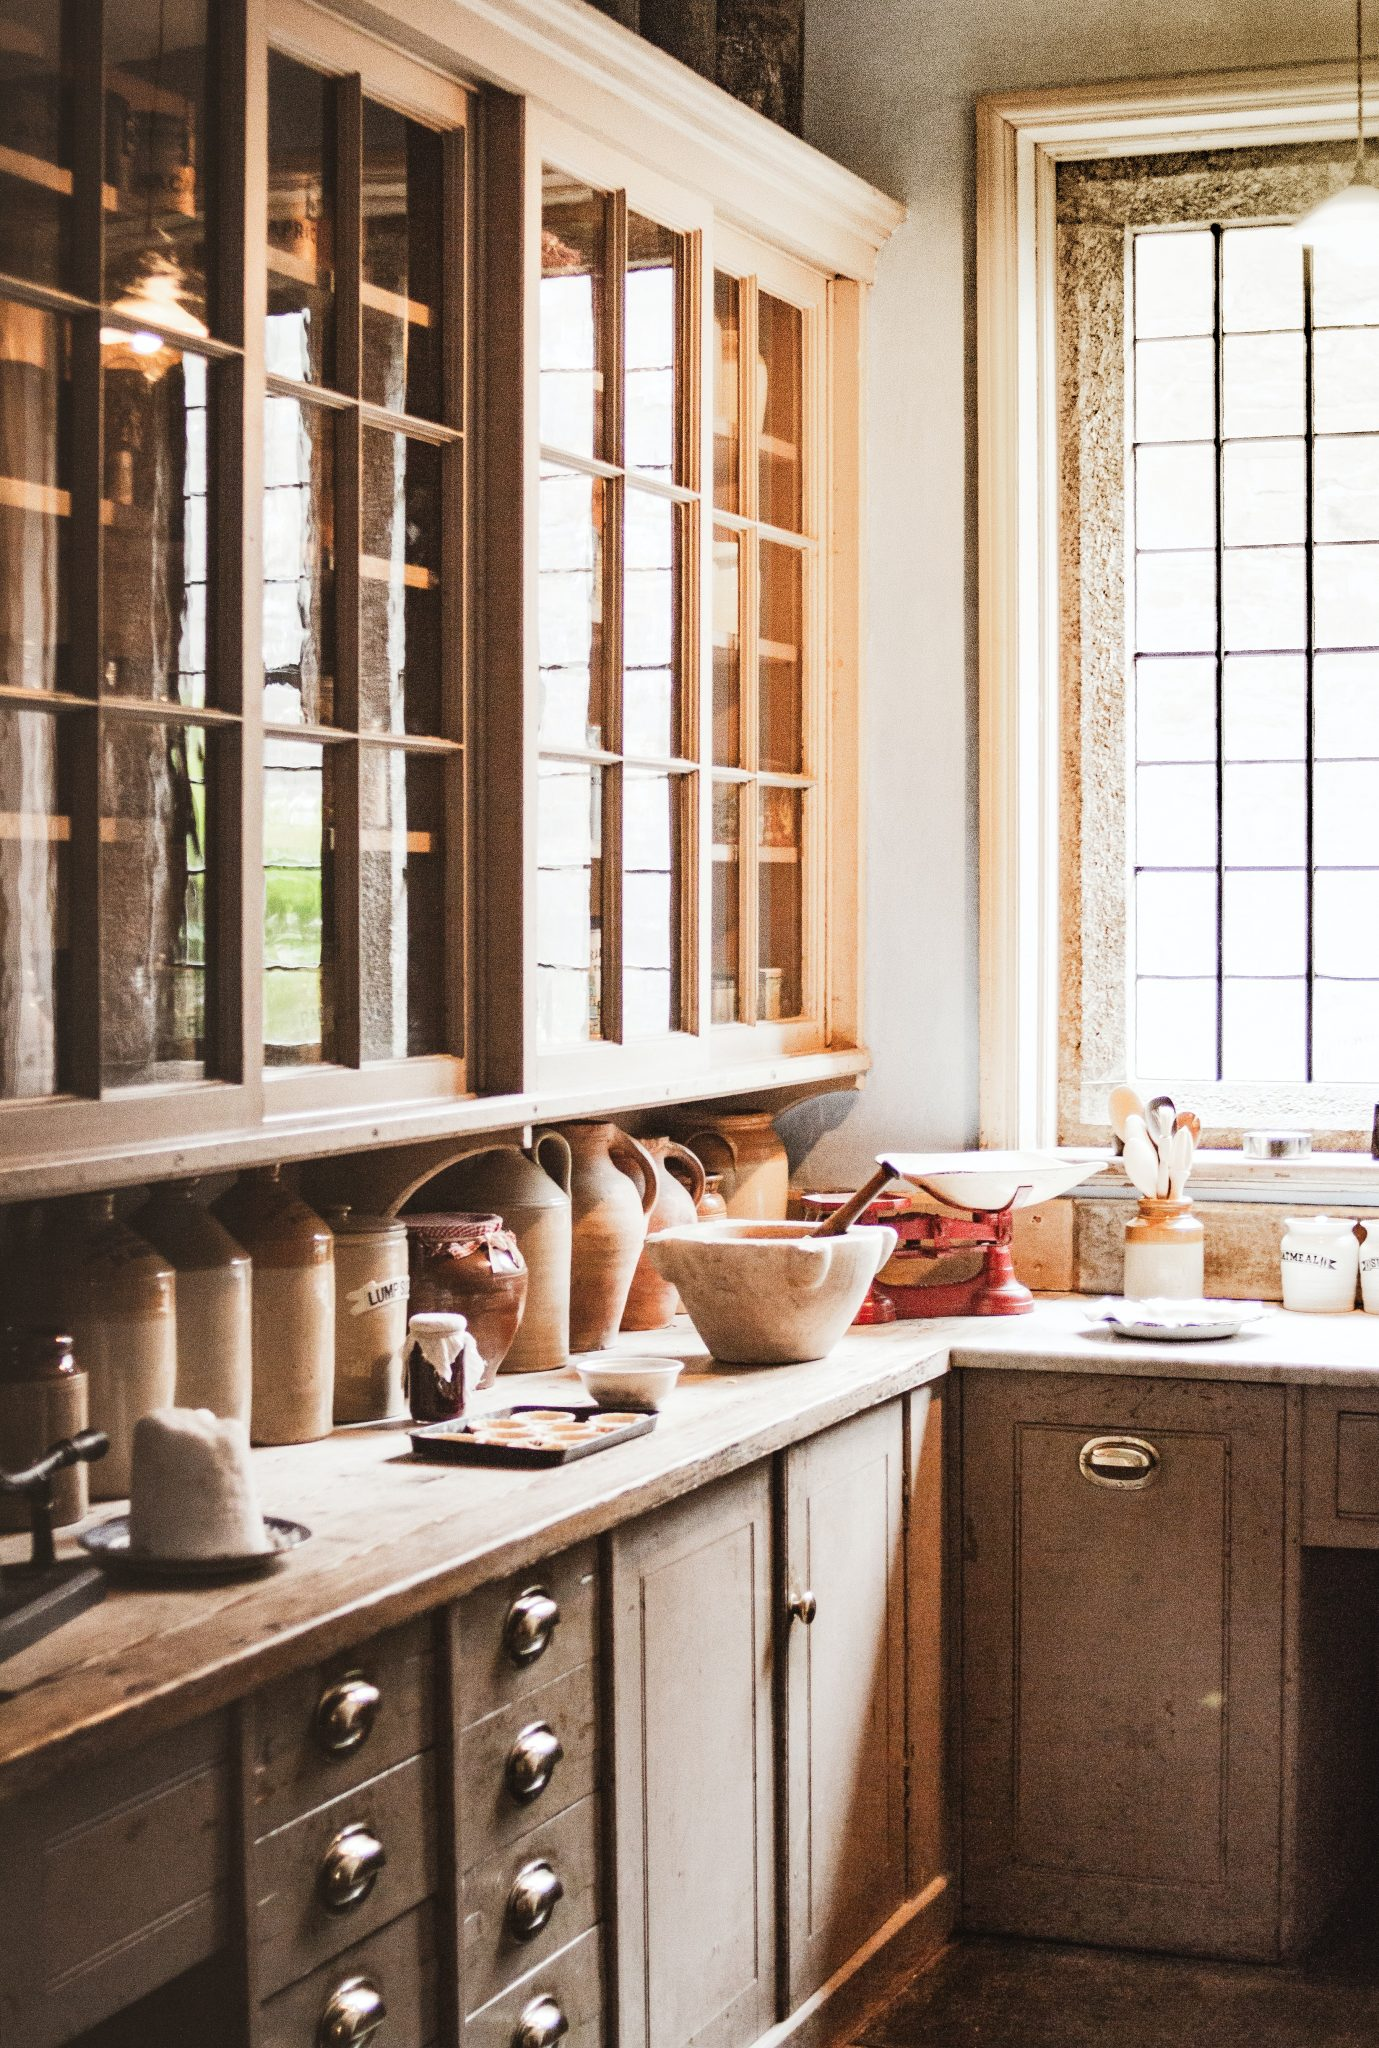 Maple Cabinets: Why They Could Be Right For You